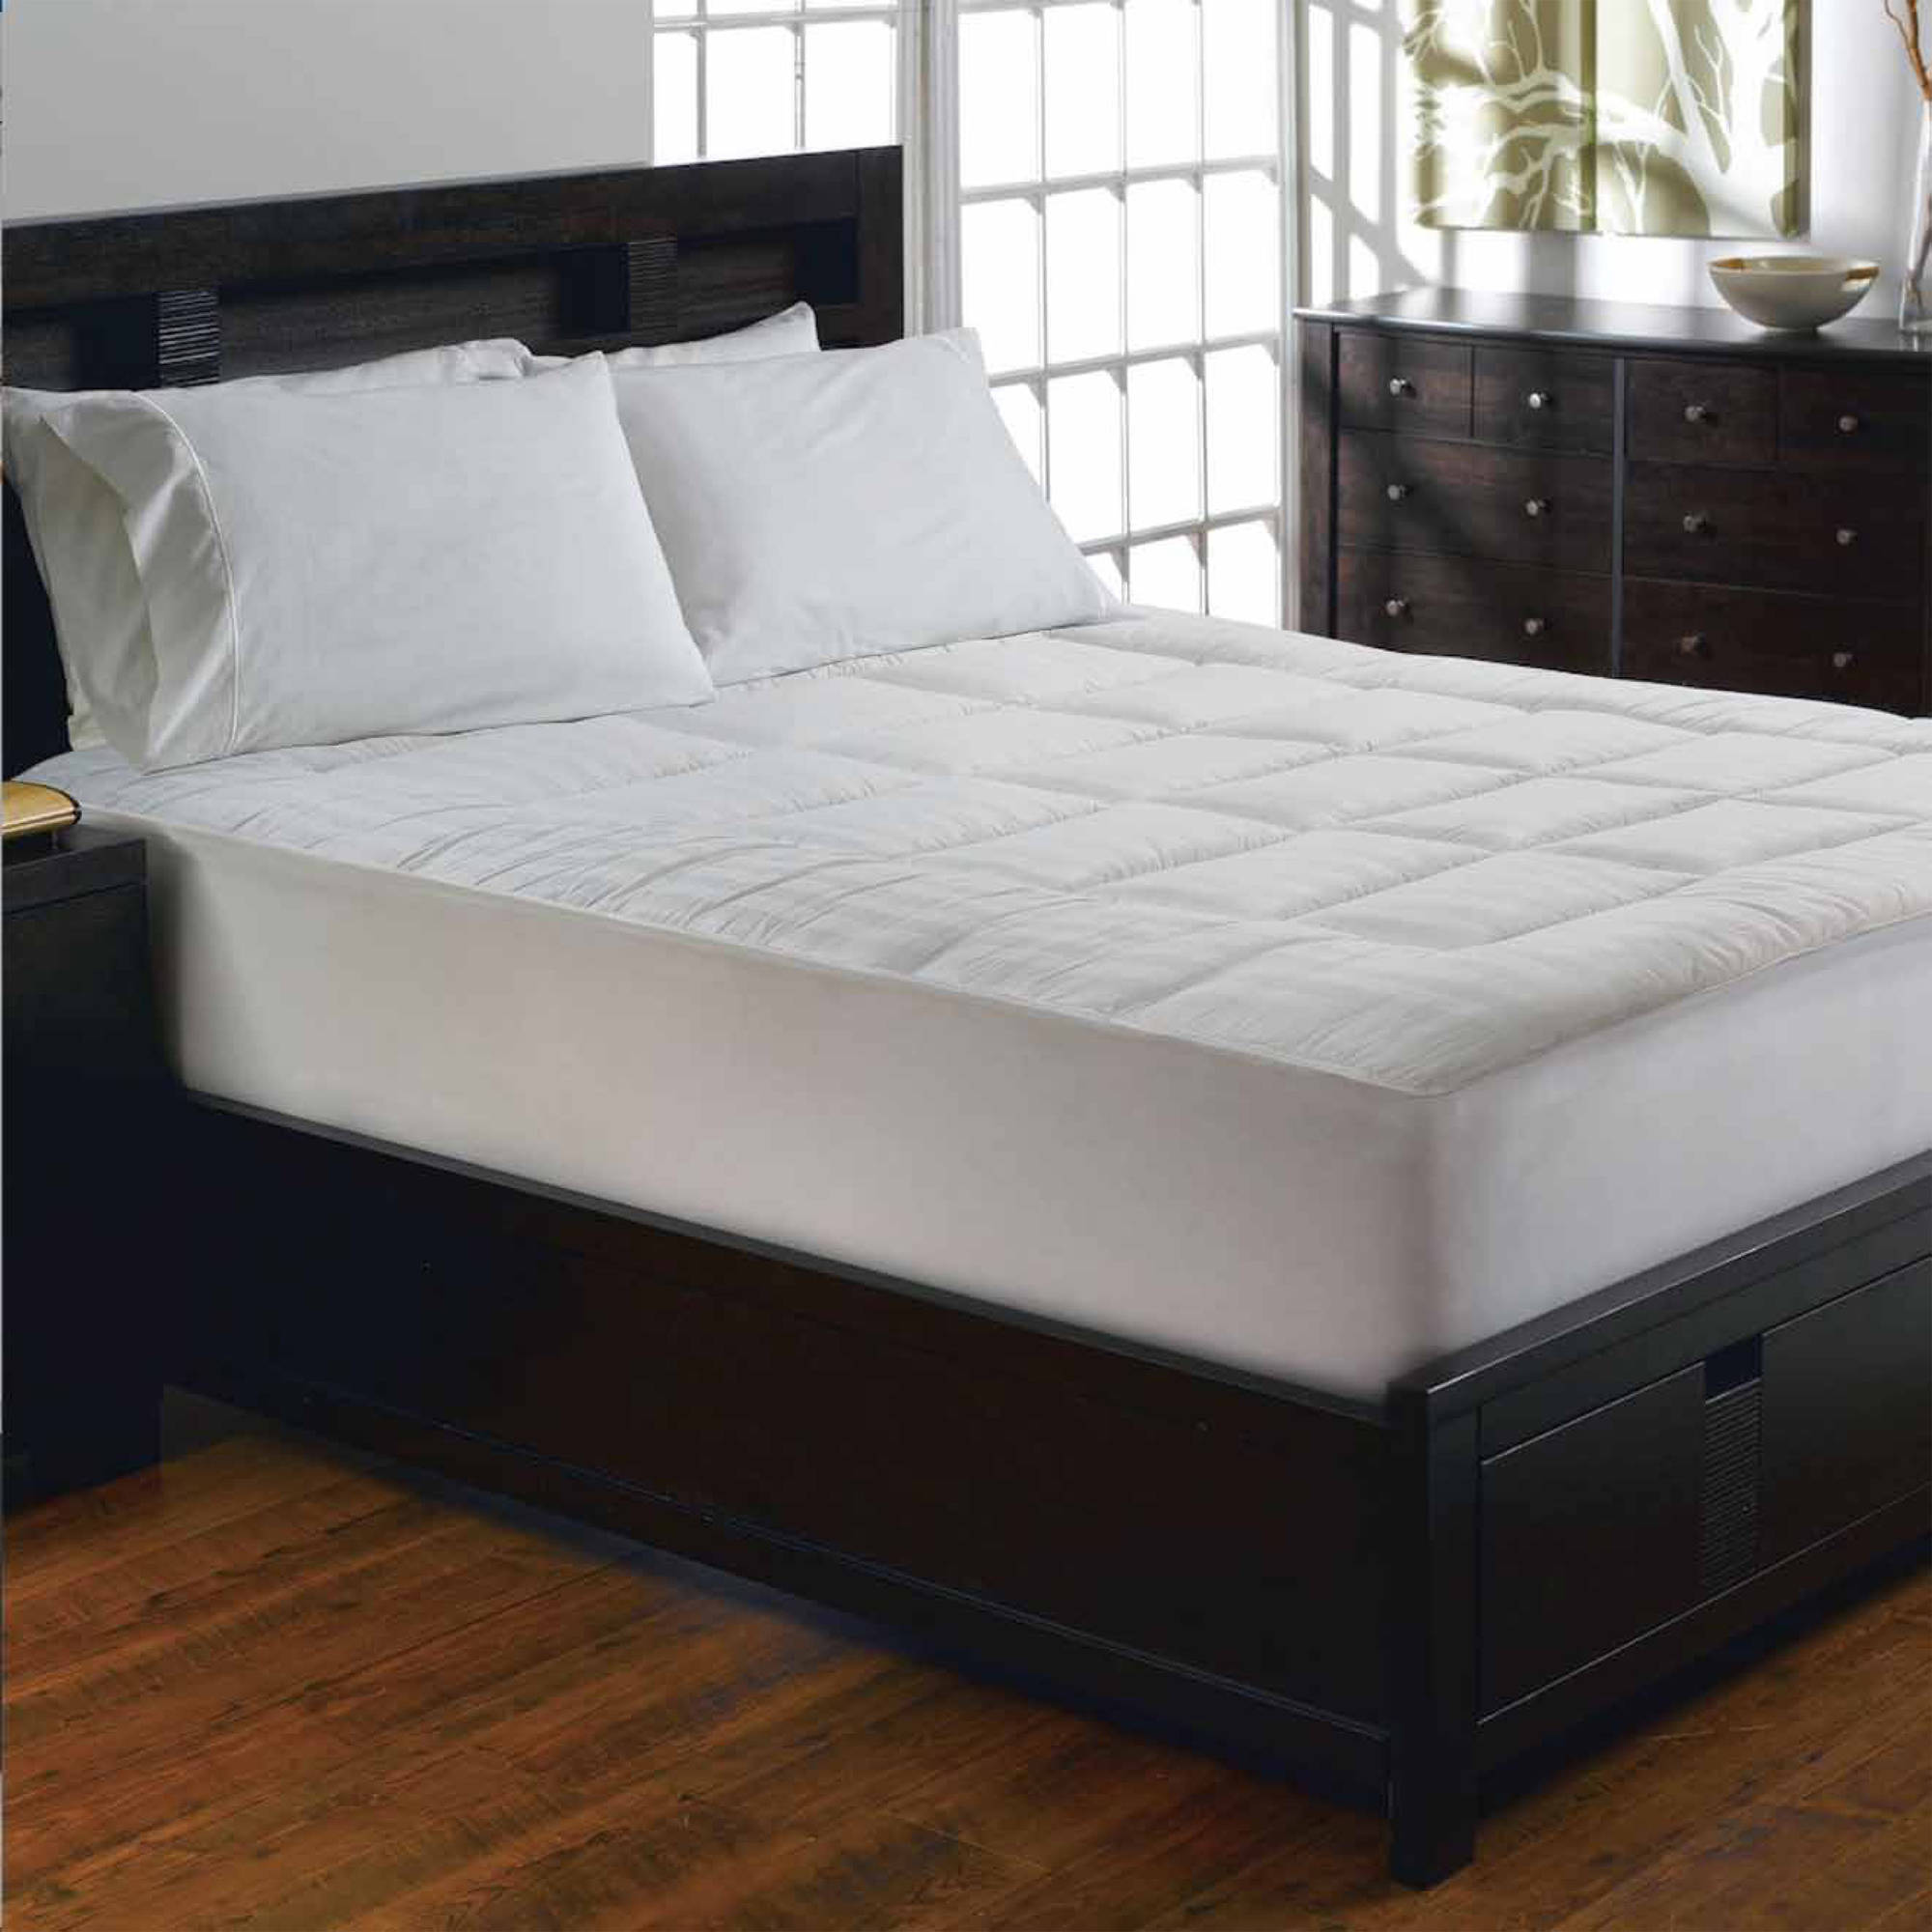 Better Homes and Gardens Snap 'N Wash Mattress Pad, Multiple Sizes -  Walmart.com